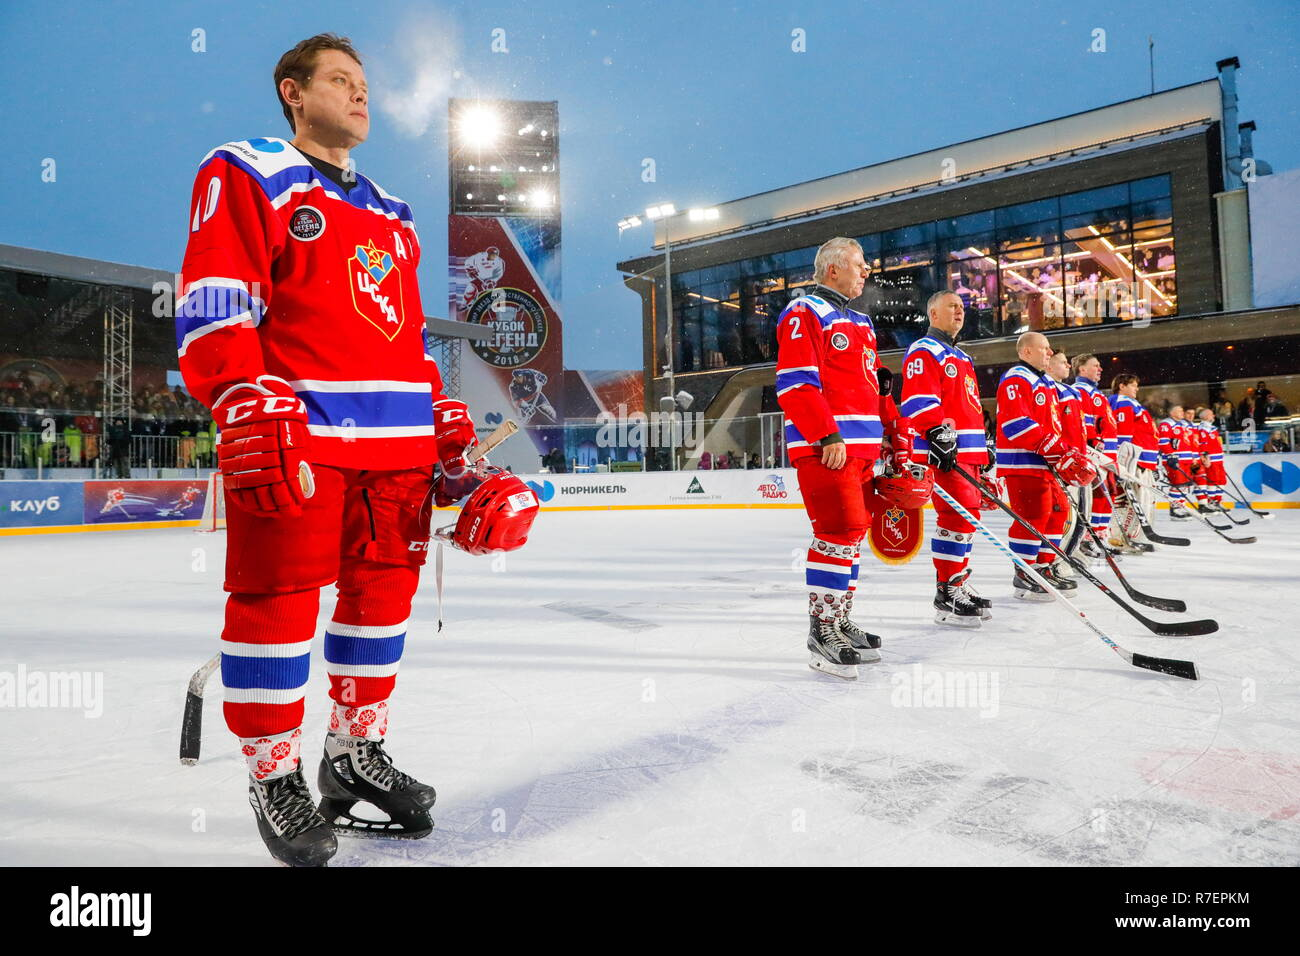 Moscow, Russia. 09th Dec, 2018. World Legends Hockey League President Pavel Bure (R) of the CSKA team during the 5th Legends Cup ice hockey tournament at the Luzhki Club ice rink; held for retired senior ice hockey players, this year's tournament marks the 100th birth anniversary of Soviet ice hockey player and coach Anatoly Tarasov (1918-1995). Mikhail Japaridze/TASS Credit: ITAR-TASS News Agency/Alamy Live News - Stock Image